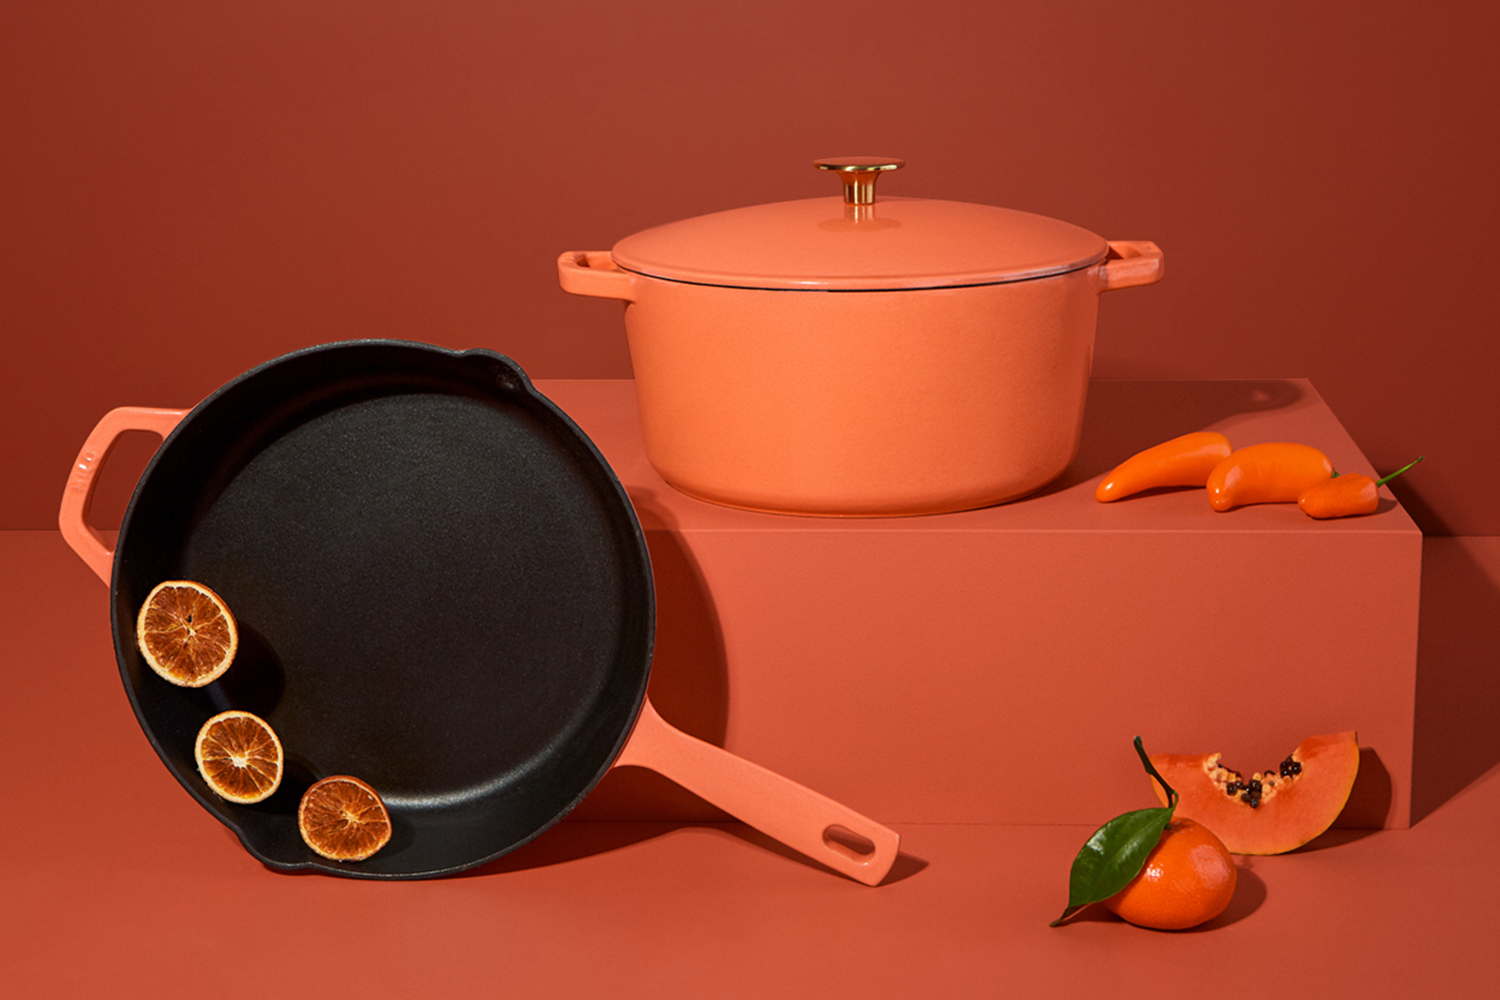 A Milo cast iron skillet and enameled Dutch oven in the color terracotta